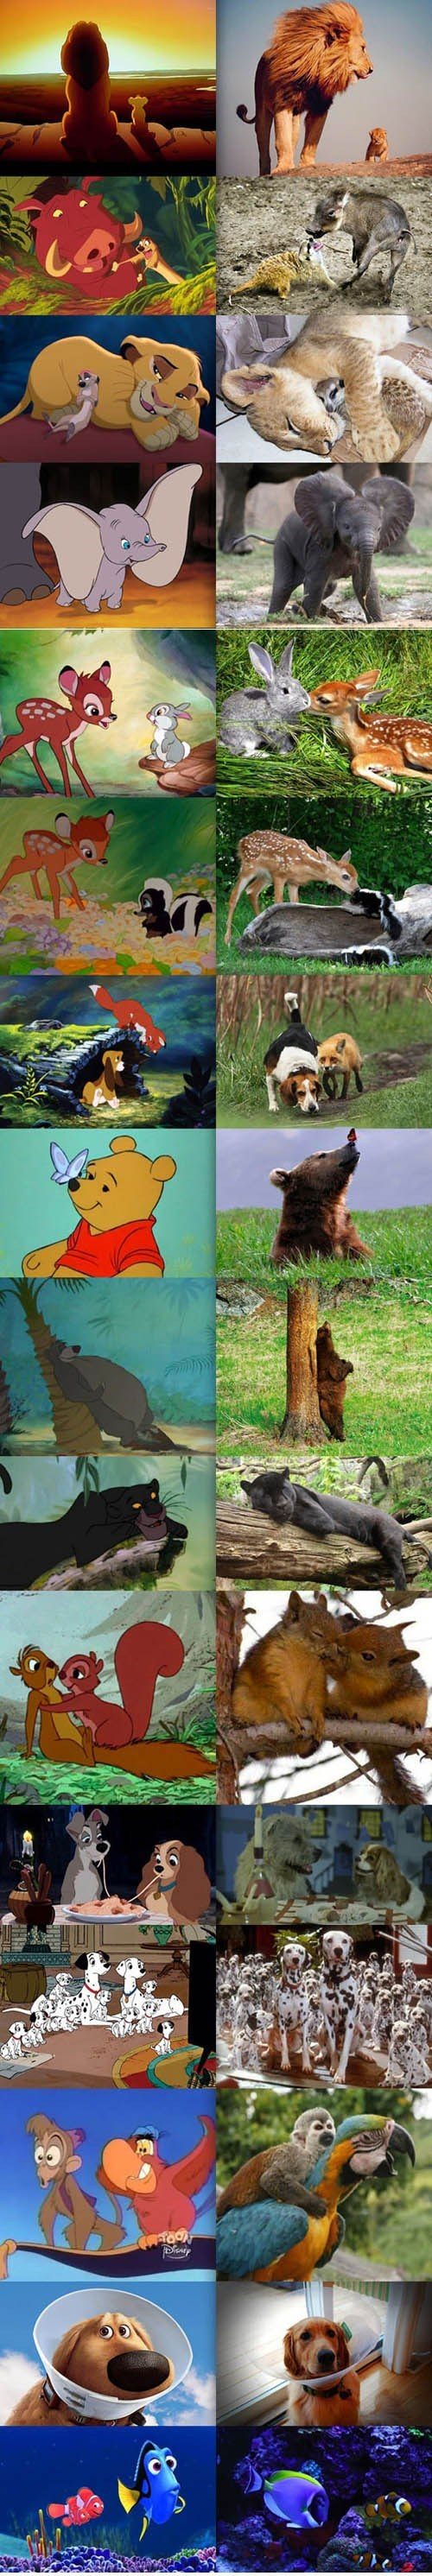 disney,real life,animation,Movie,animals